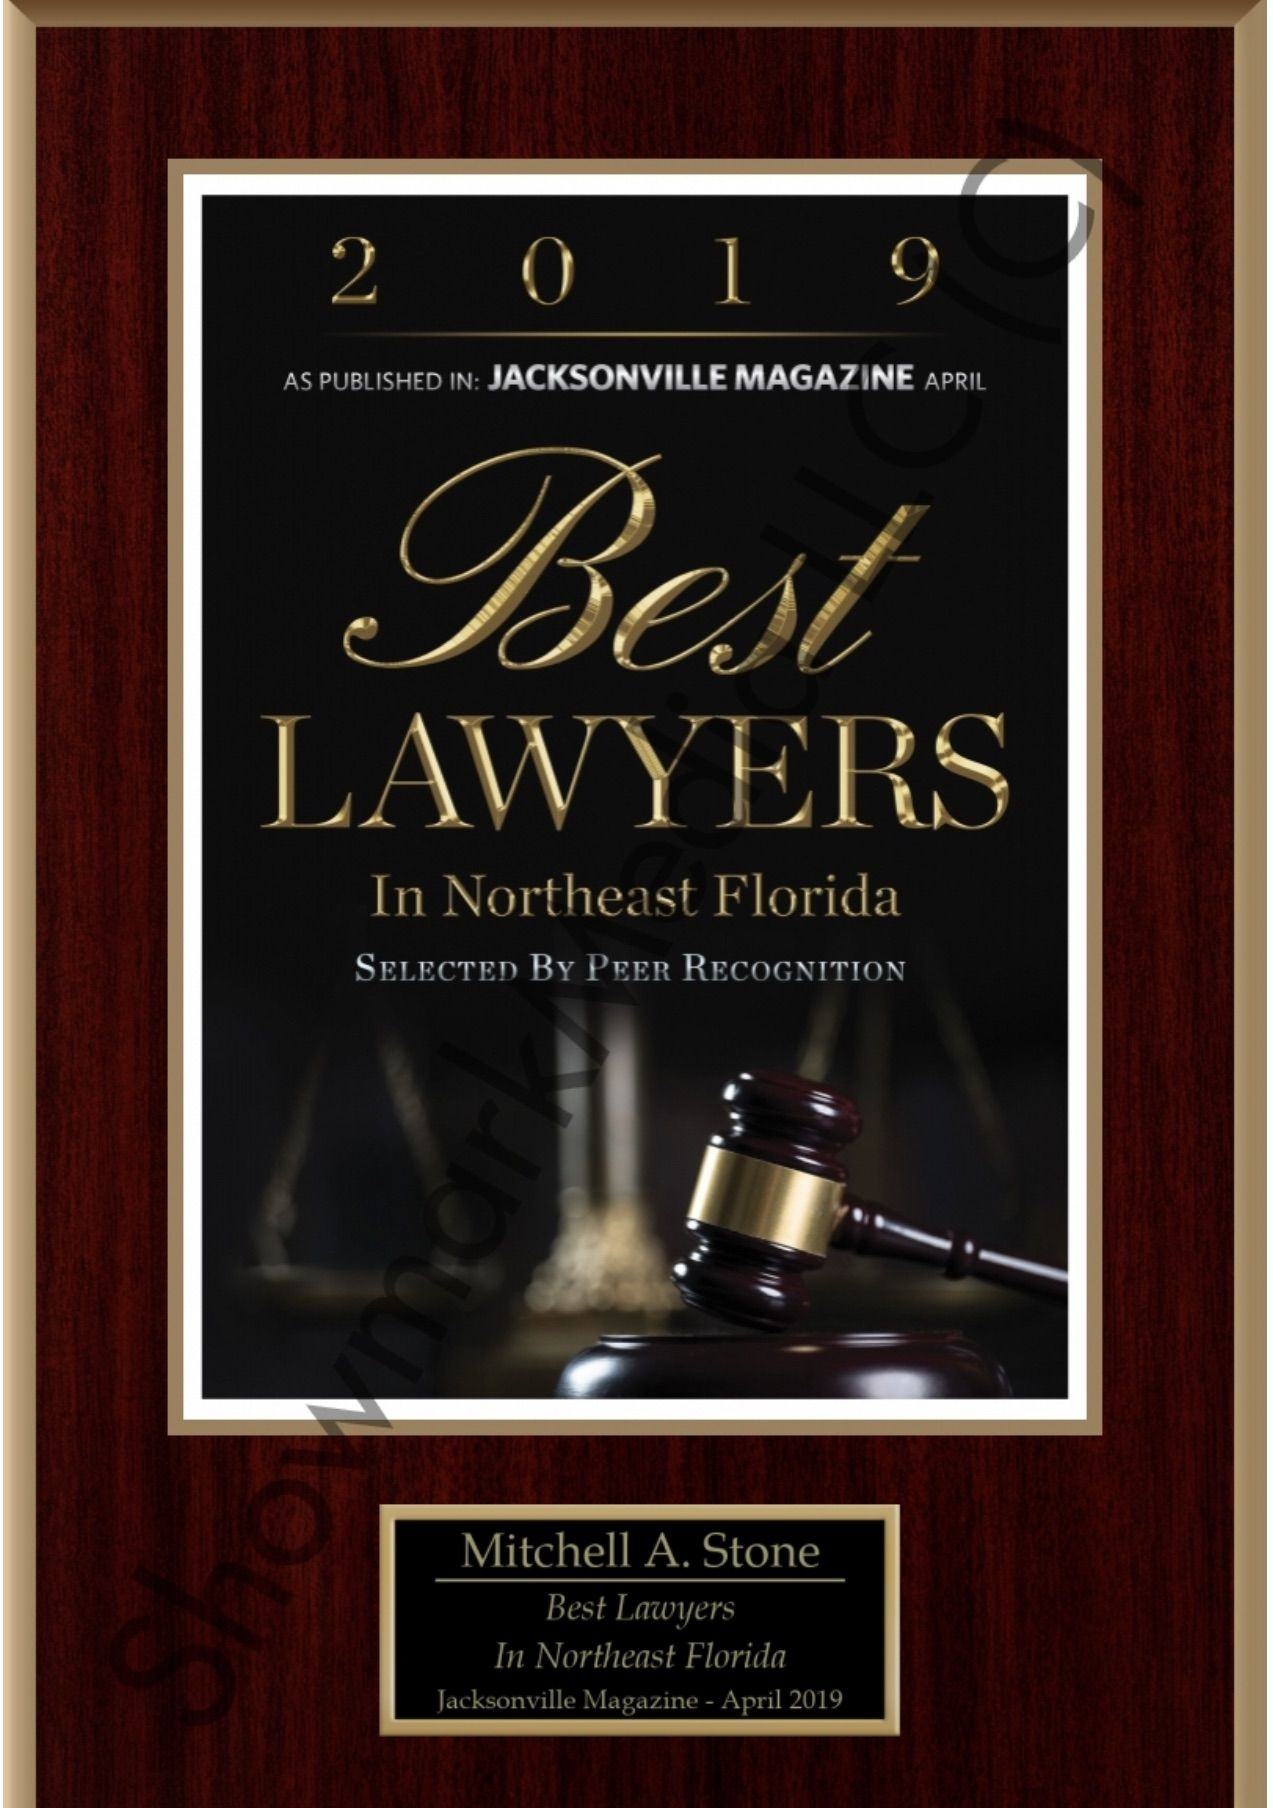 Mitch Stone named Best Lawyers in Northeast Florida 2019